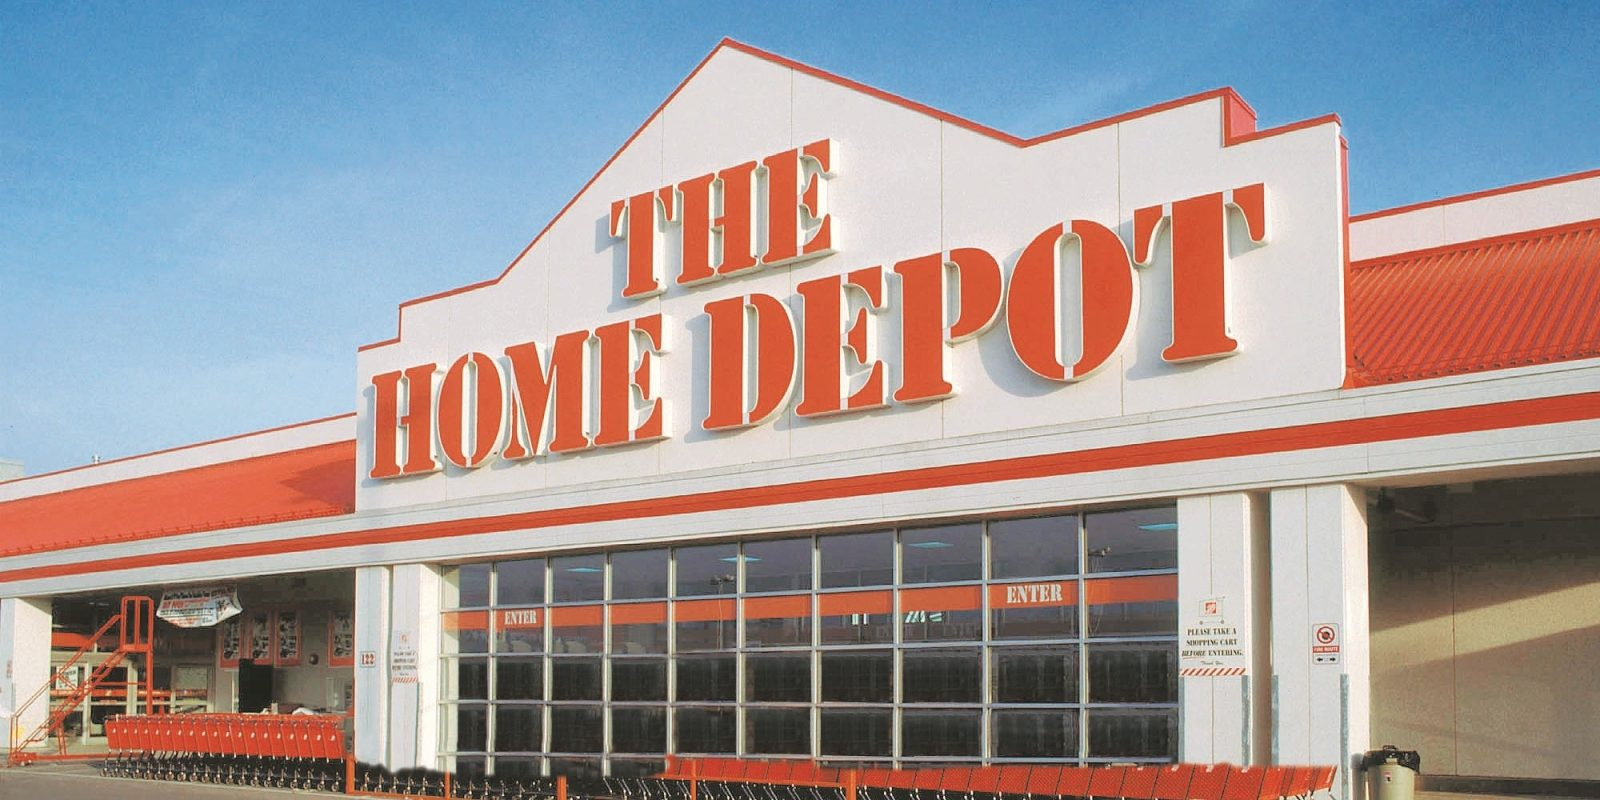 Gift cards up to 20% off: Home Depot, Airbnb, Domino's, Yankee Candle, more